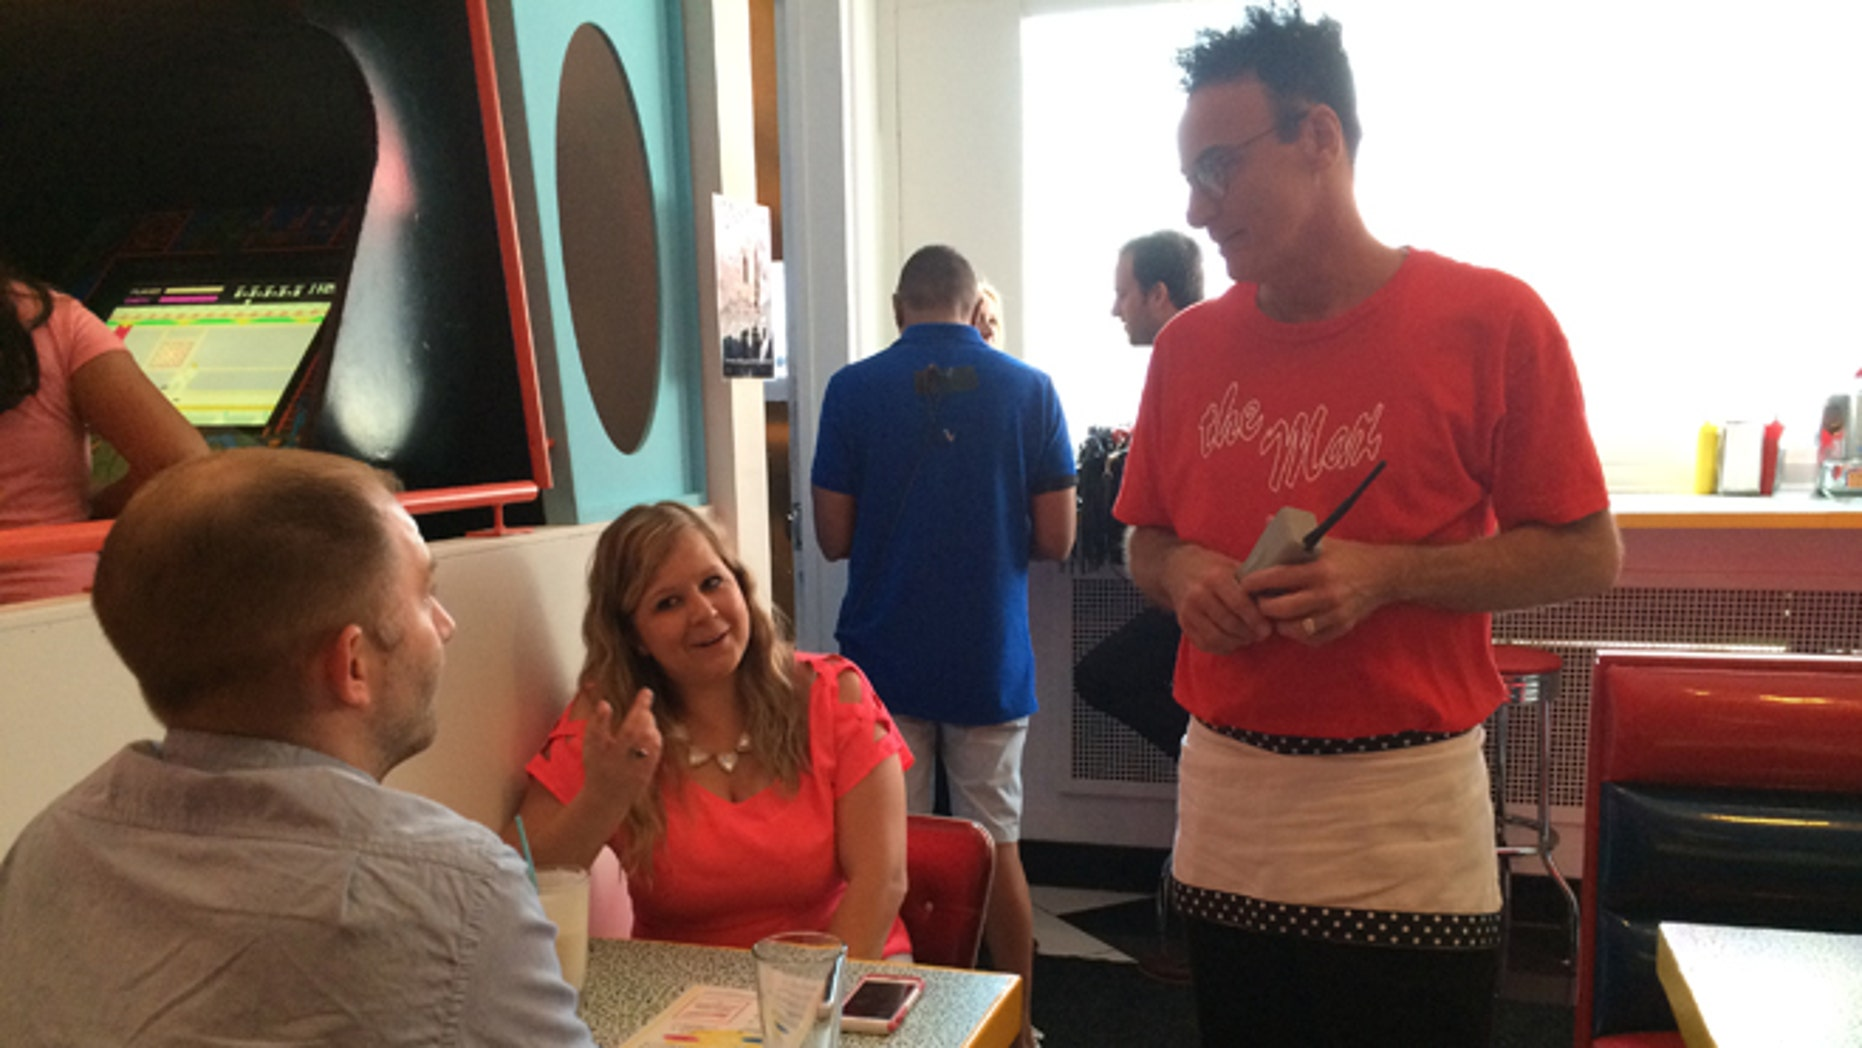 """In this Wednesday, June 1, 2016 photo, original """"Saved by the Bell"""" castmember Ed Alonzo, right, talks to Steve Gross and Tiffany Gross at pop-up restaurant Saved by the Max in Chicago. A vacant restaurant space in Chicagoâs Wicker Park neighborhood has become a replica of The Max, the fictitious hangout from the TV sitcom """"Saved by the Bell."""" (AP Photo/Terry Tang)"""